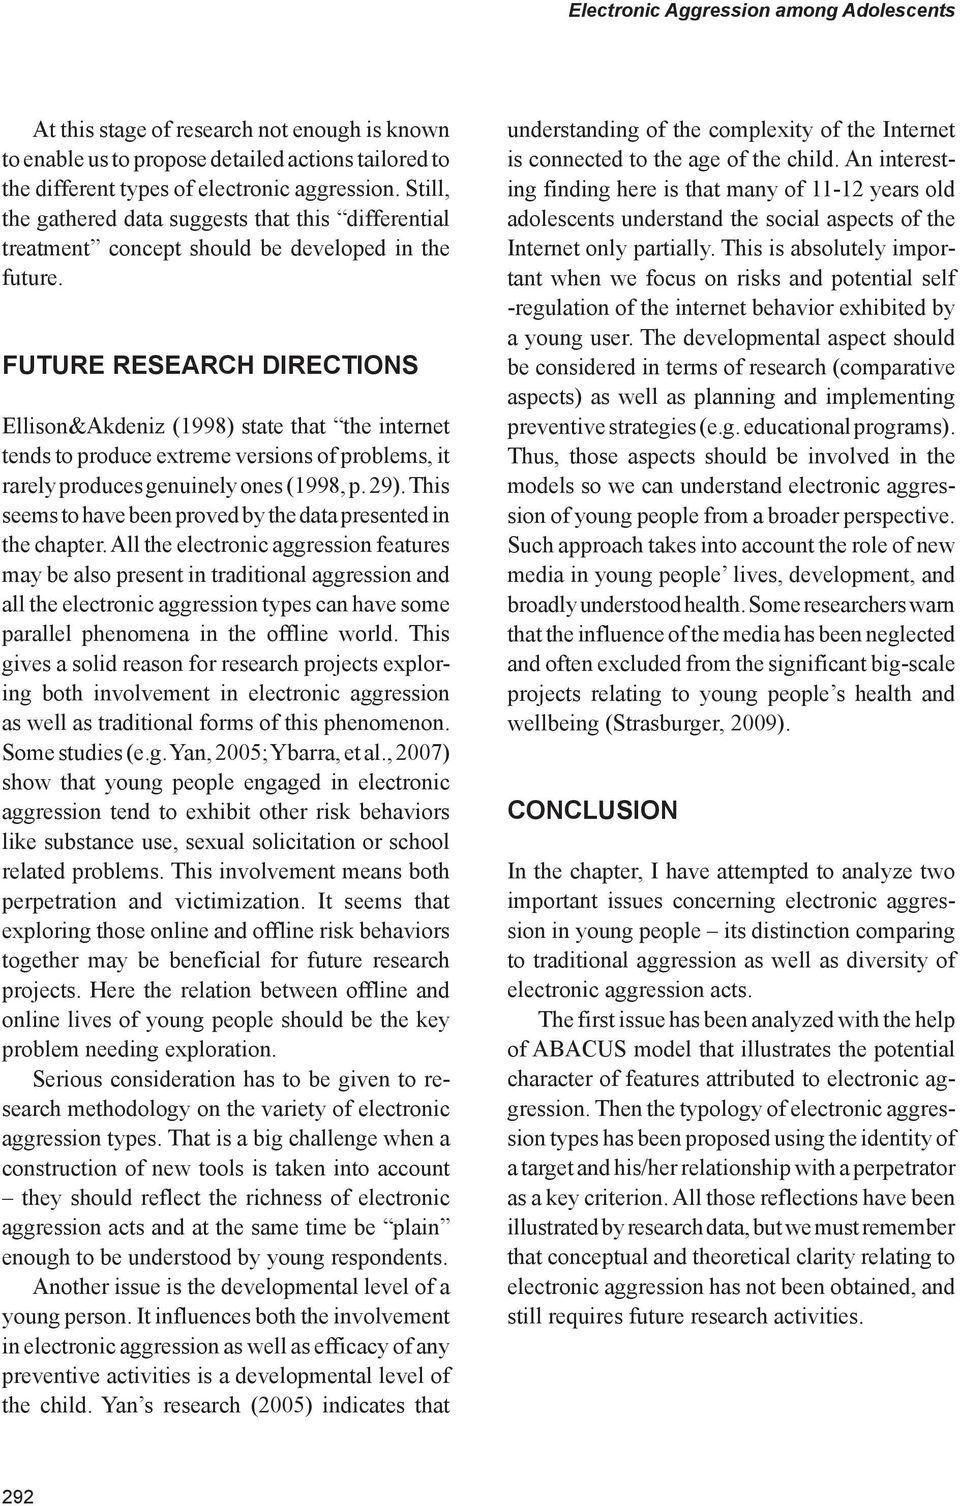 FuTURE research directions Ellison&Akdeniz (1998) state that the internet tends to produce extreme versions of problems, it rarely produces genuinely ones (1998, p. 29).